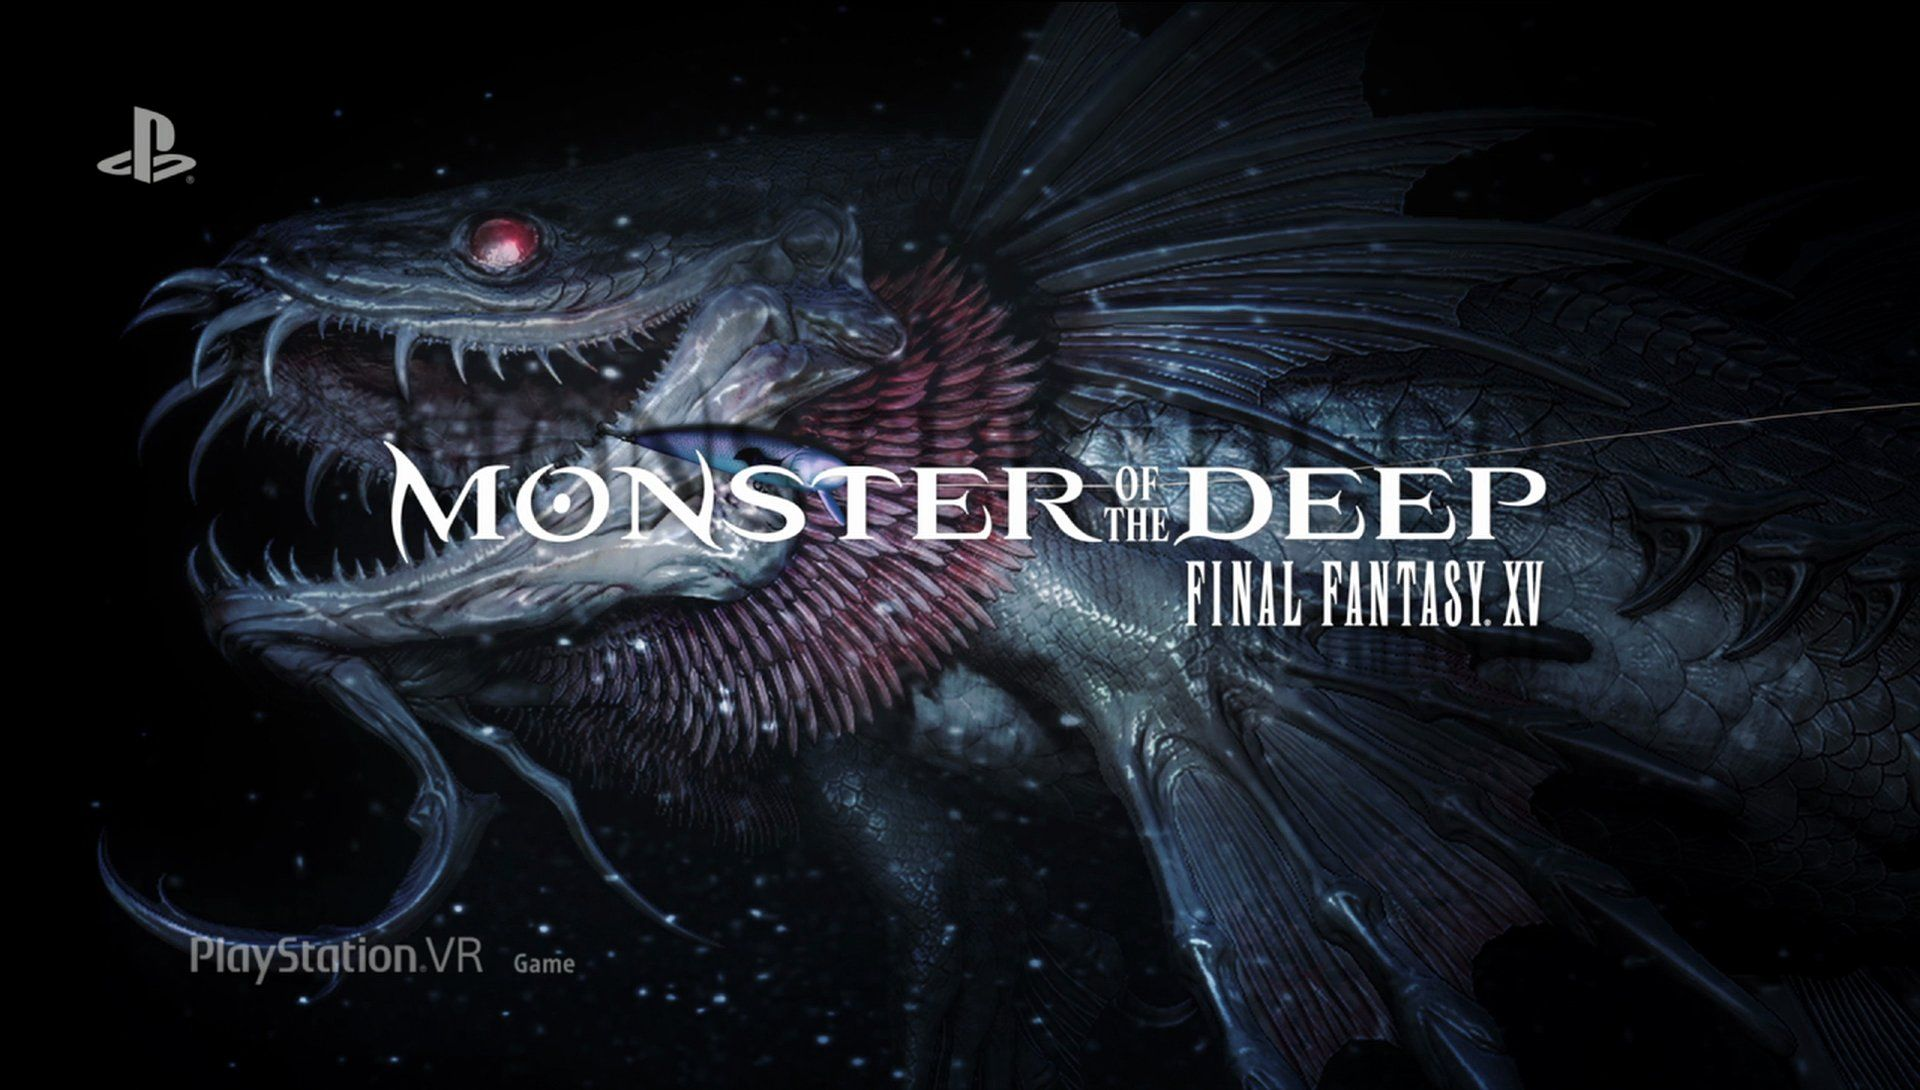 Final Fantasy Xv Monster Of The Deep Was One Of My Favorite Parts Of Sony S E3 Final Fantasy Xv Final Fantasy Final Fantasy Vii Remake Monster of deep final fantasy xv